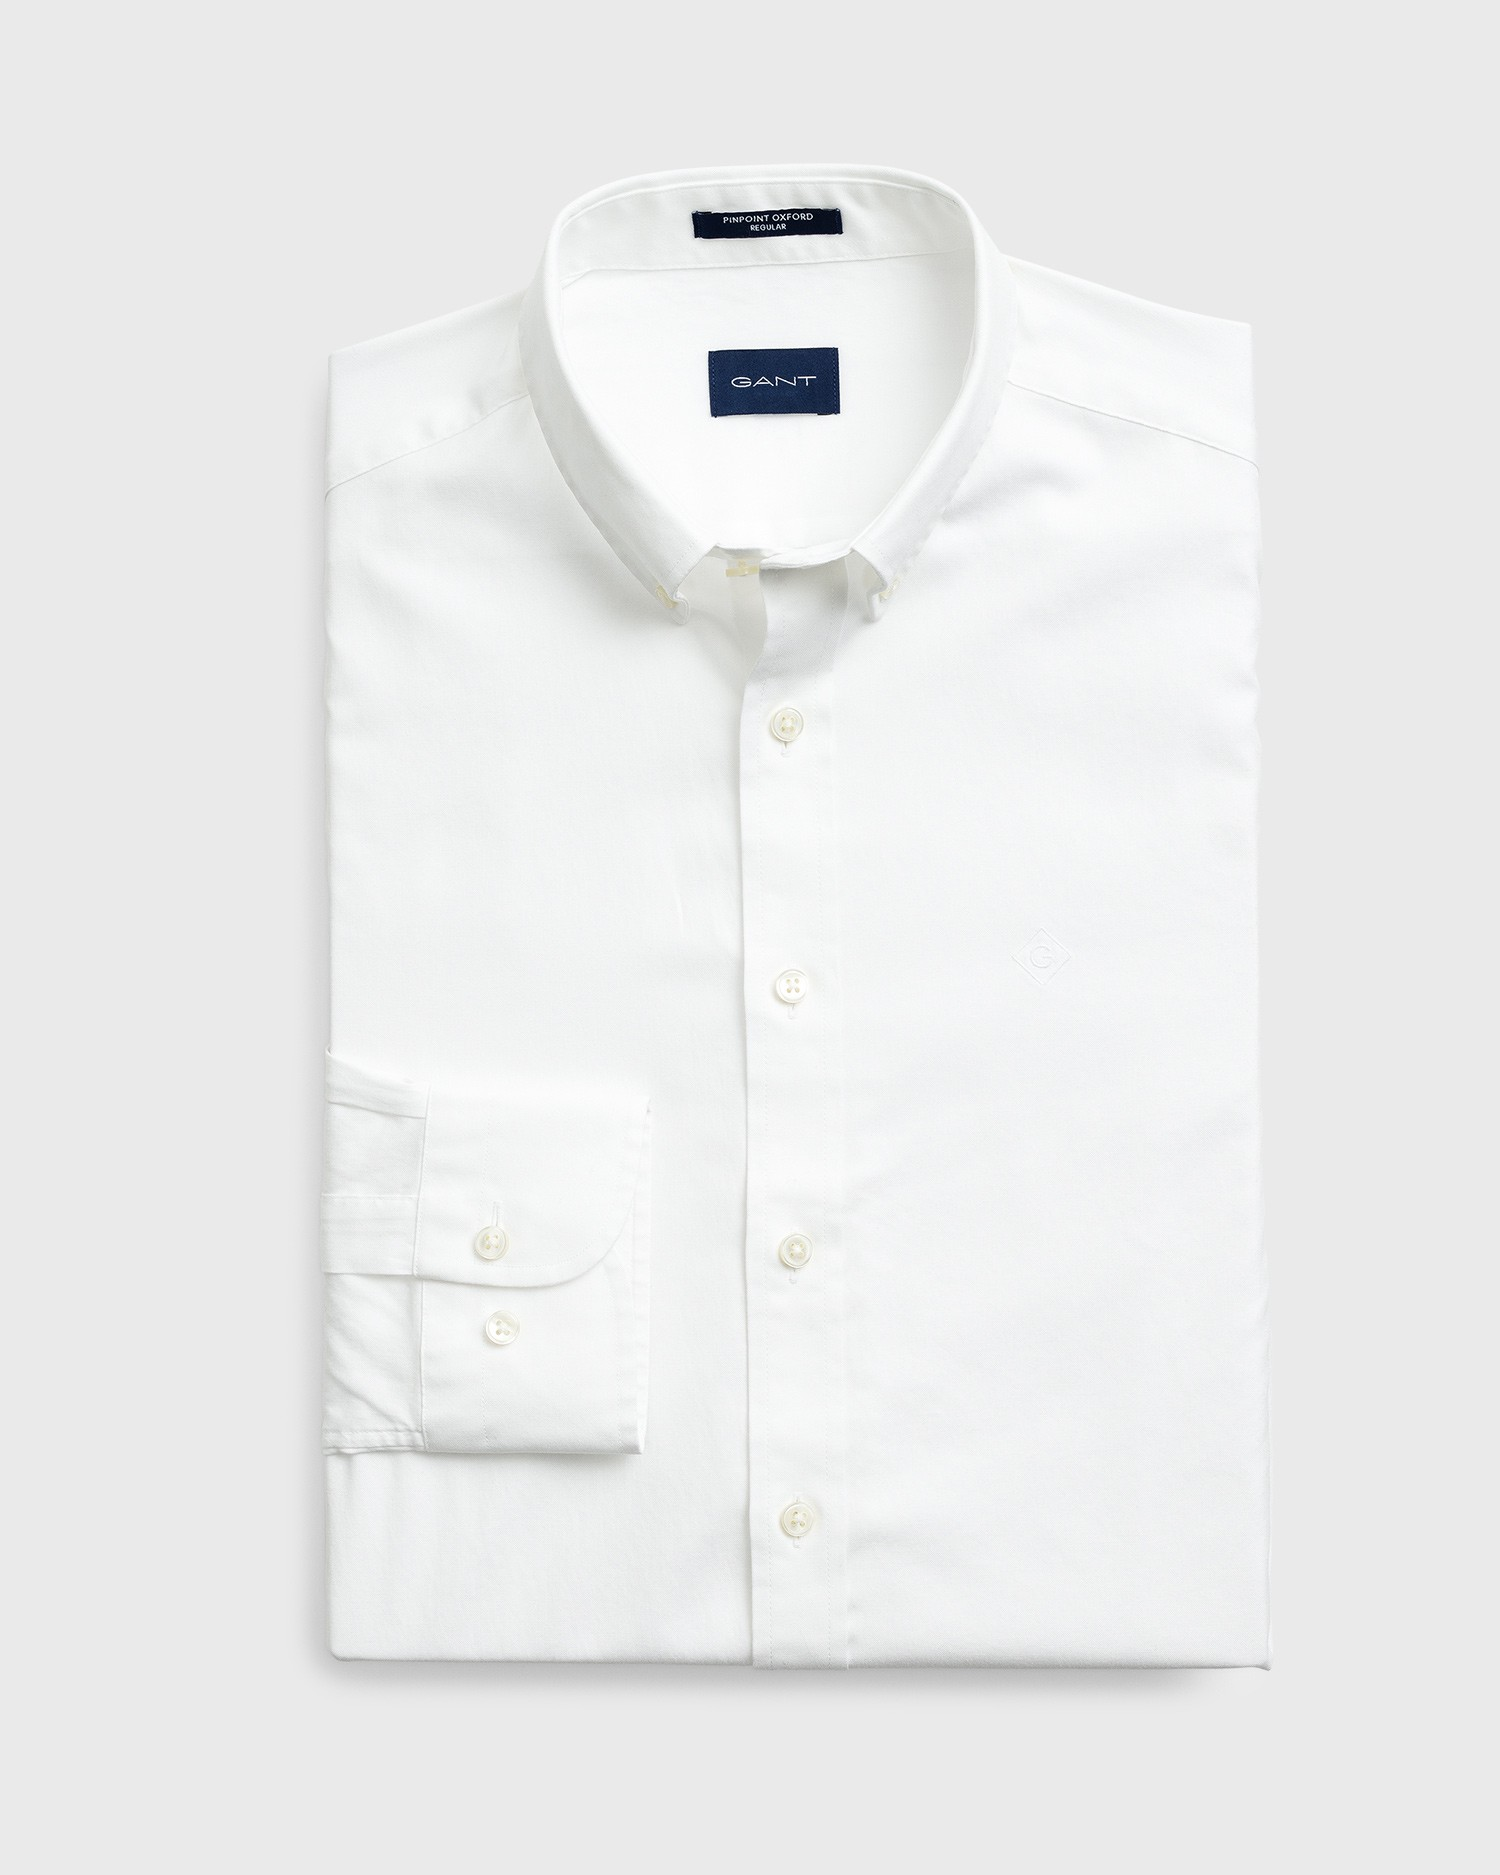 GANT Men's Pinpoint Oxford Regular Fit Shirt - 303000